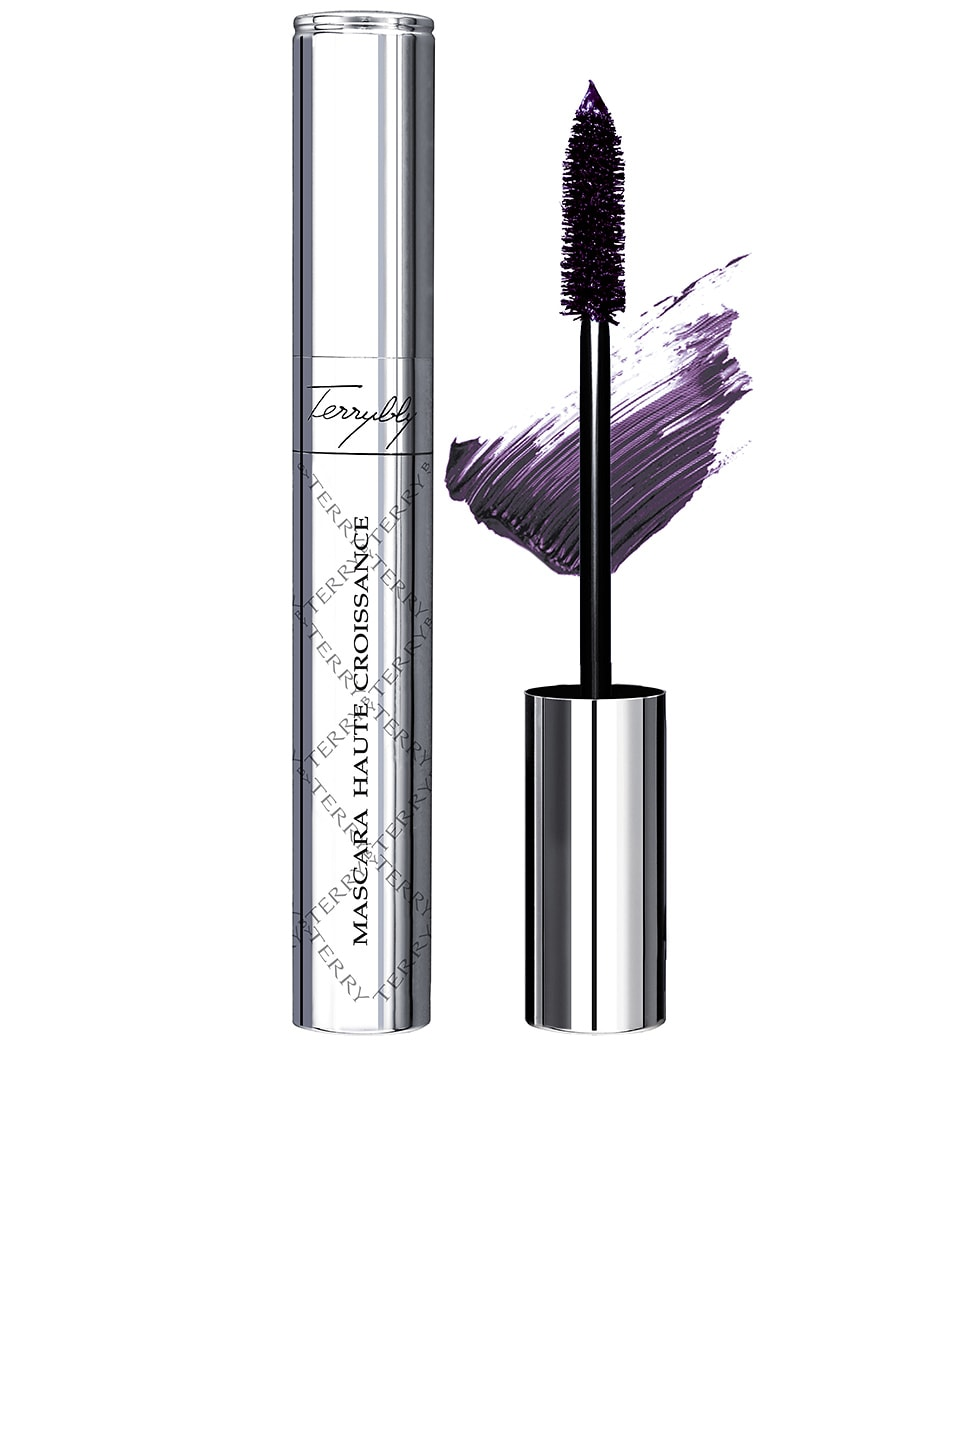 By Terry Terrybly Growth Booster Mascara in Purple Success